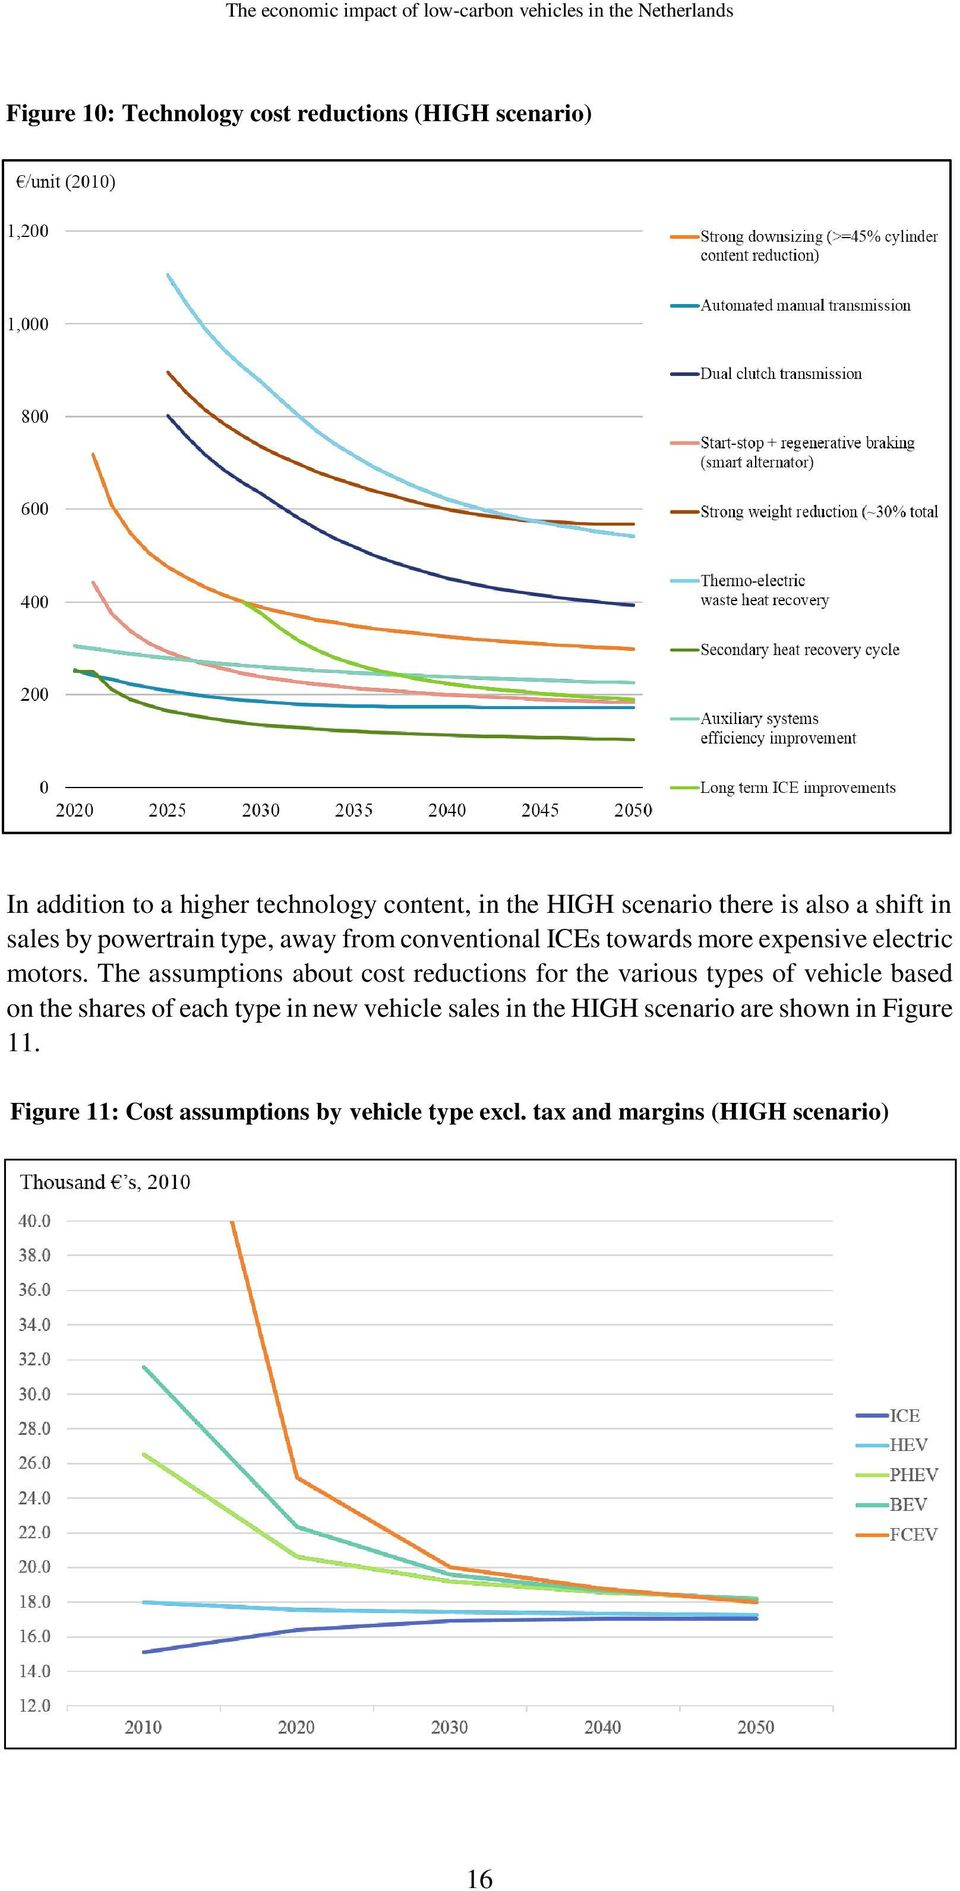 The assumptions about cost reductions for the various types of vehicle based on the shares of each type in new vehicle